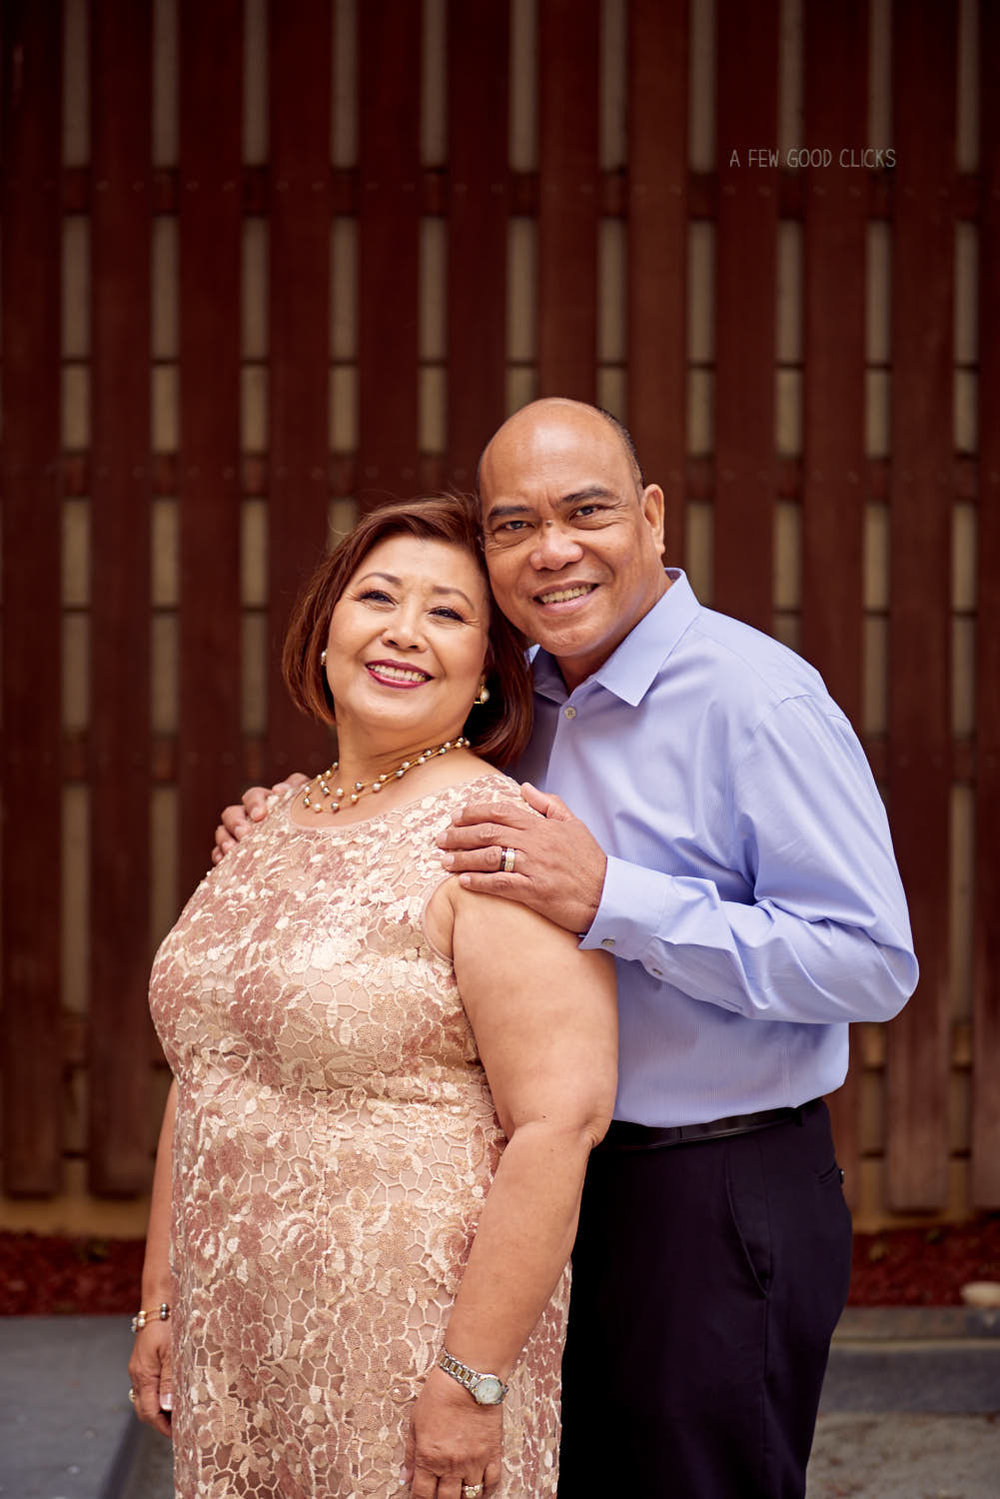 Formal Portraits | 60th Birthday Party Photography in San Jose Bay Area.